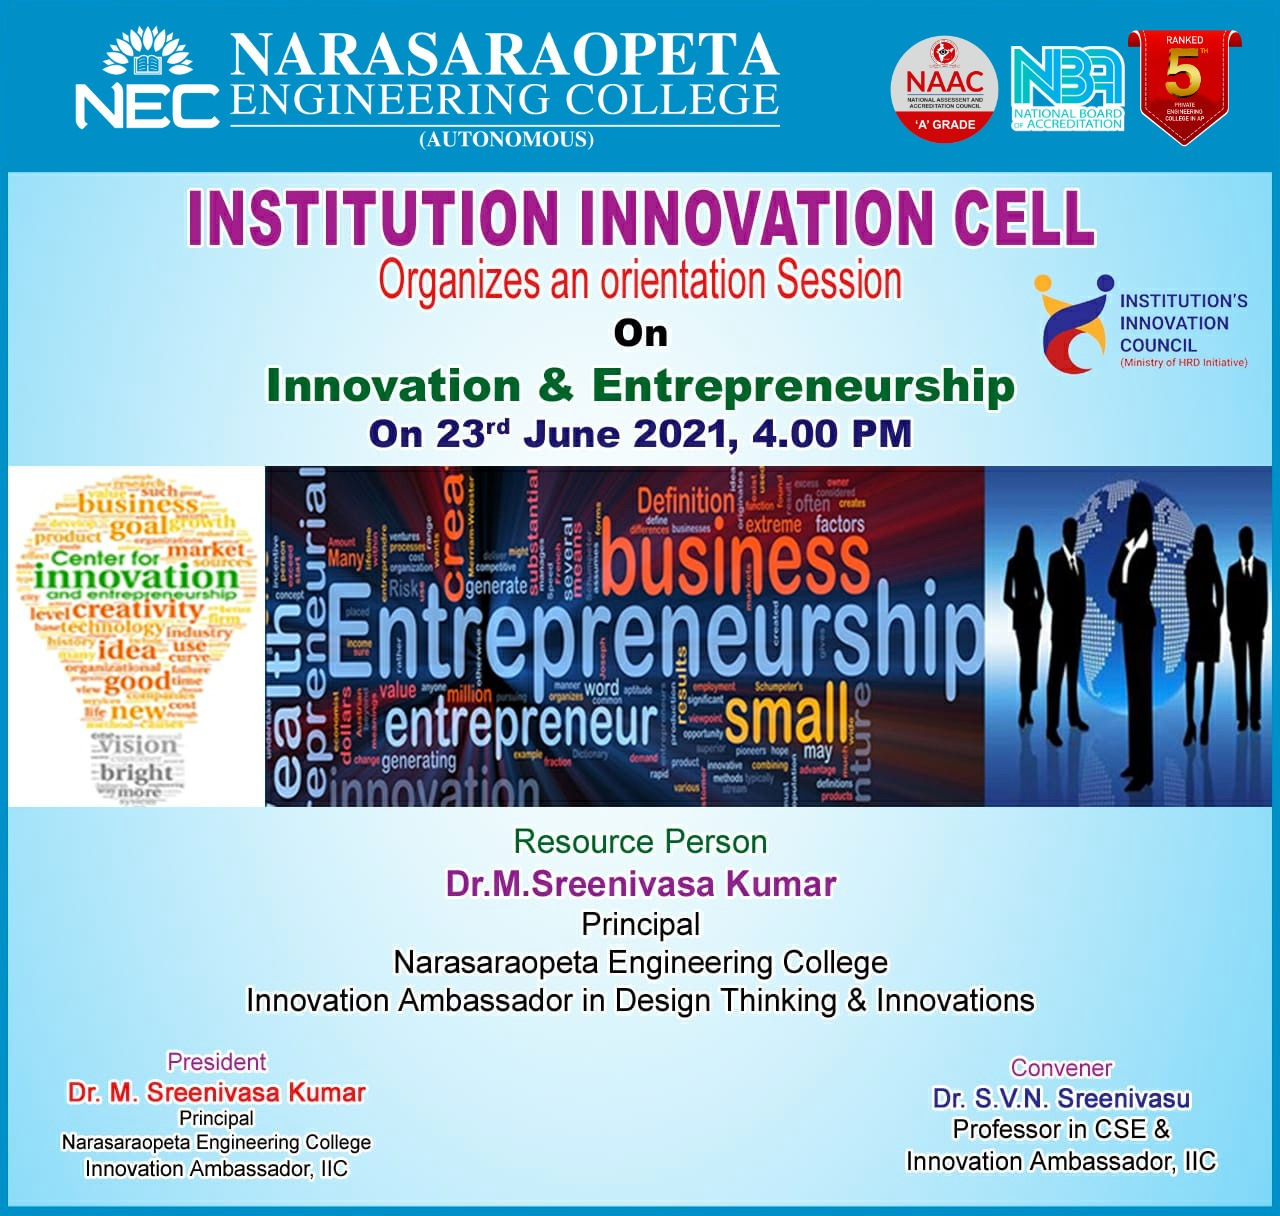 Institution Innovation Cell Organise an Orientation session on Innovation and Entrepreneurship on 23-06-2021